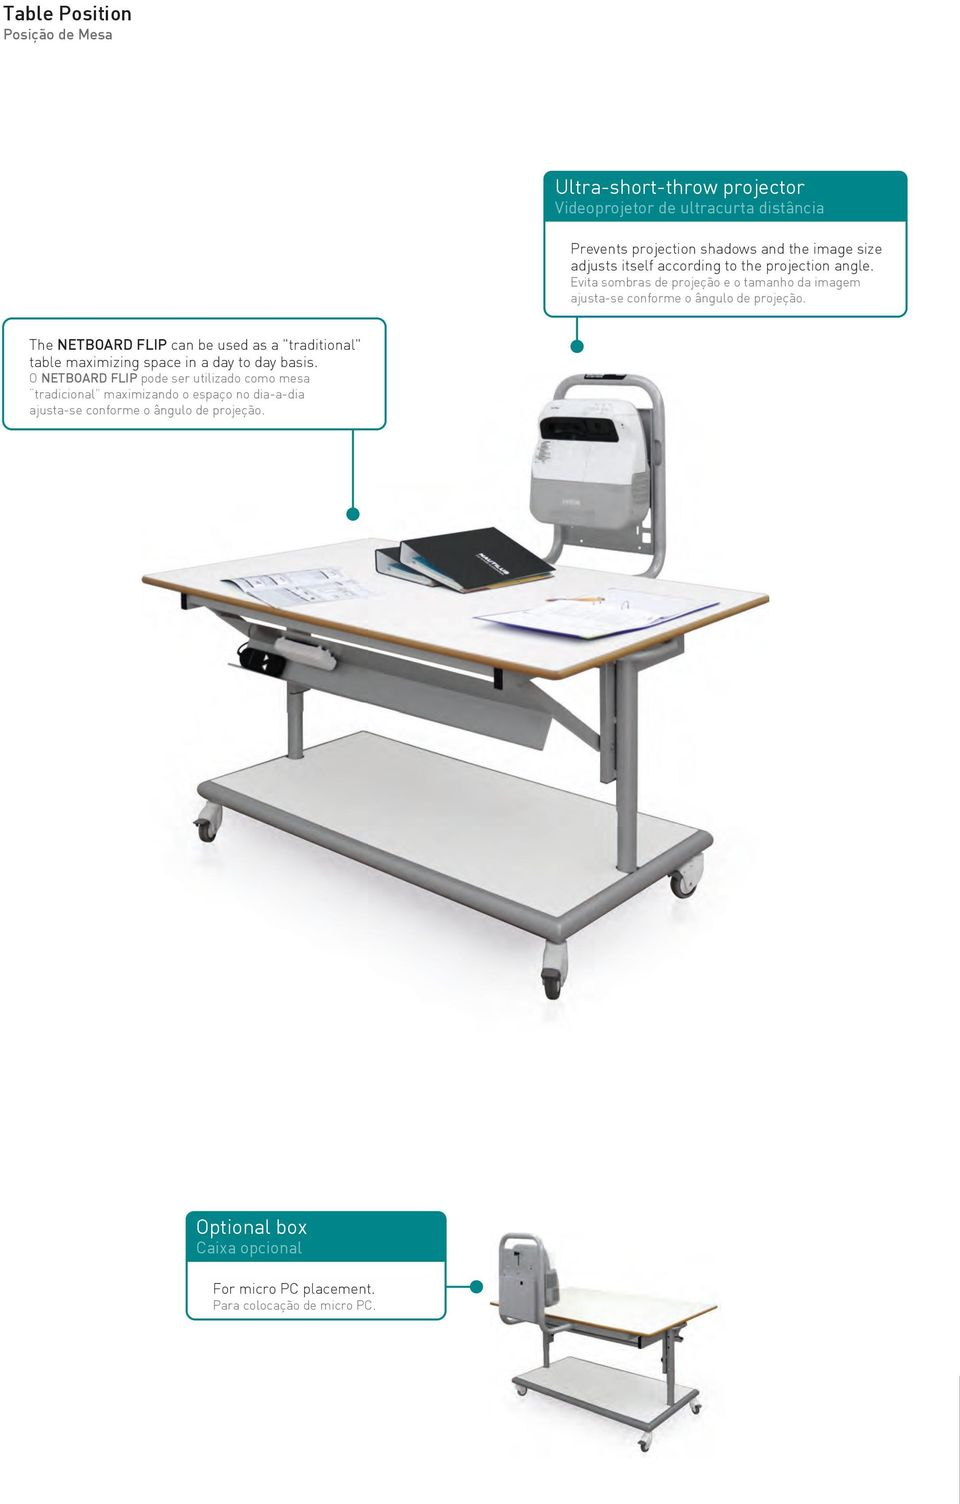 "The NETBOARD FLIP can be used as a ""traditional"" table maximizing space in a day to day basis."